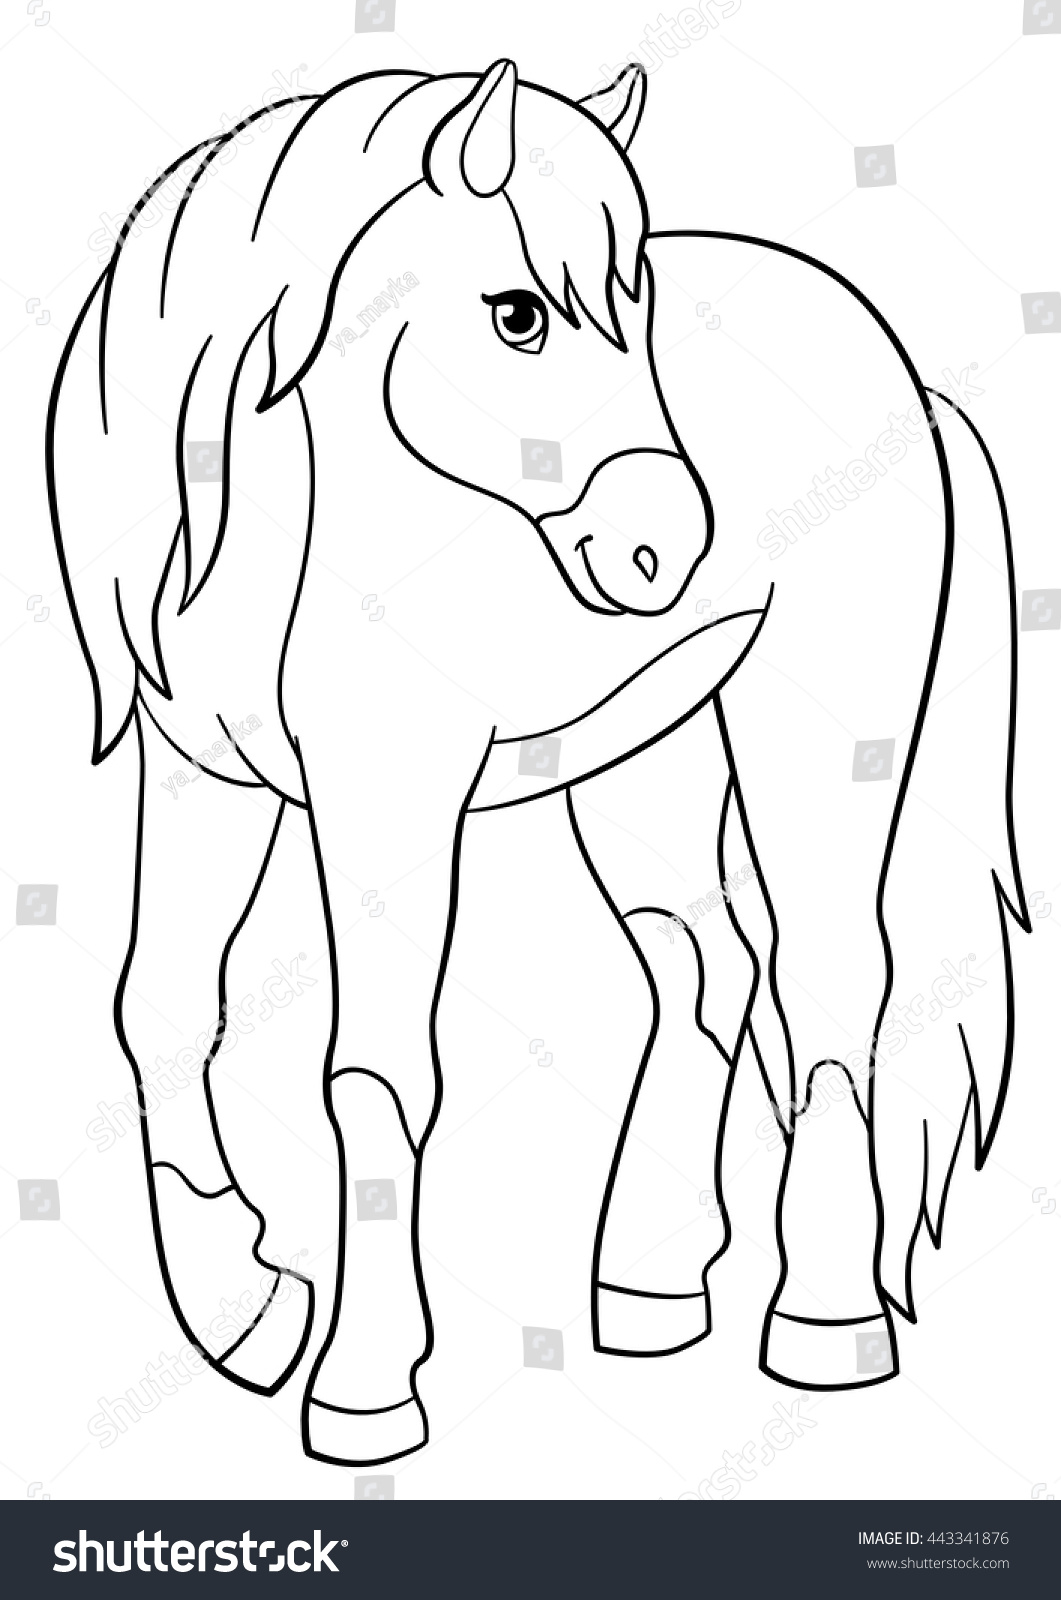 cute horse coloring pages - photo#27